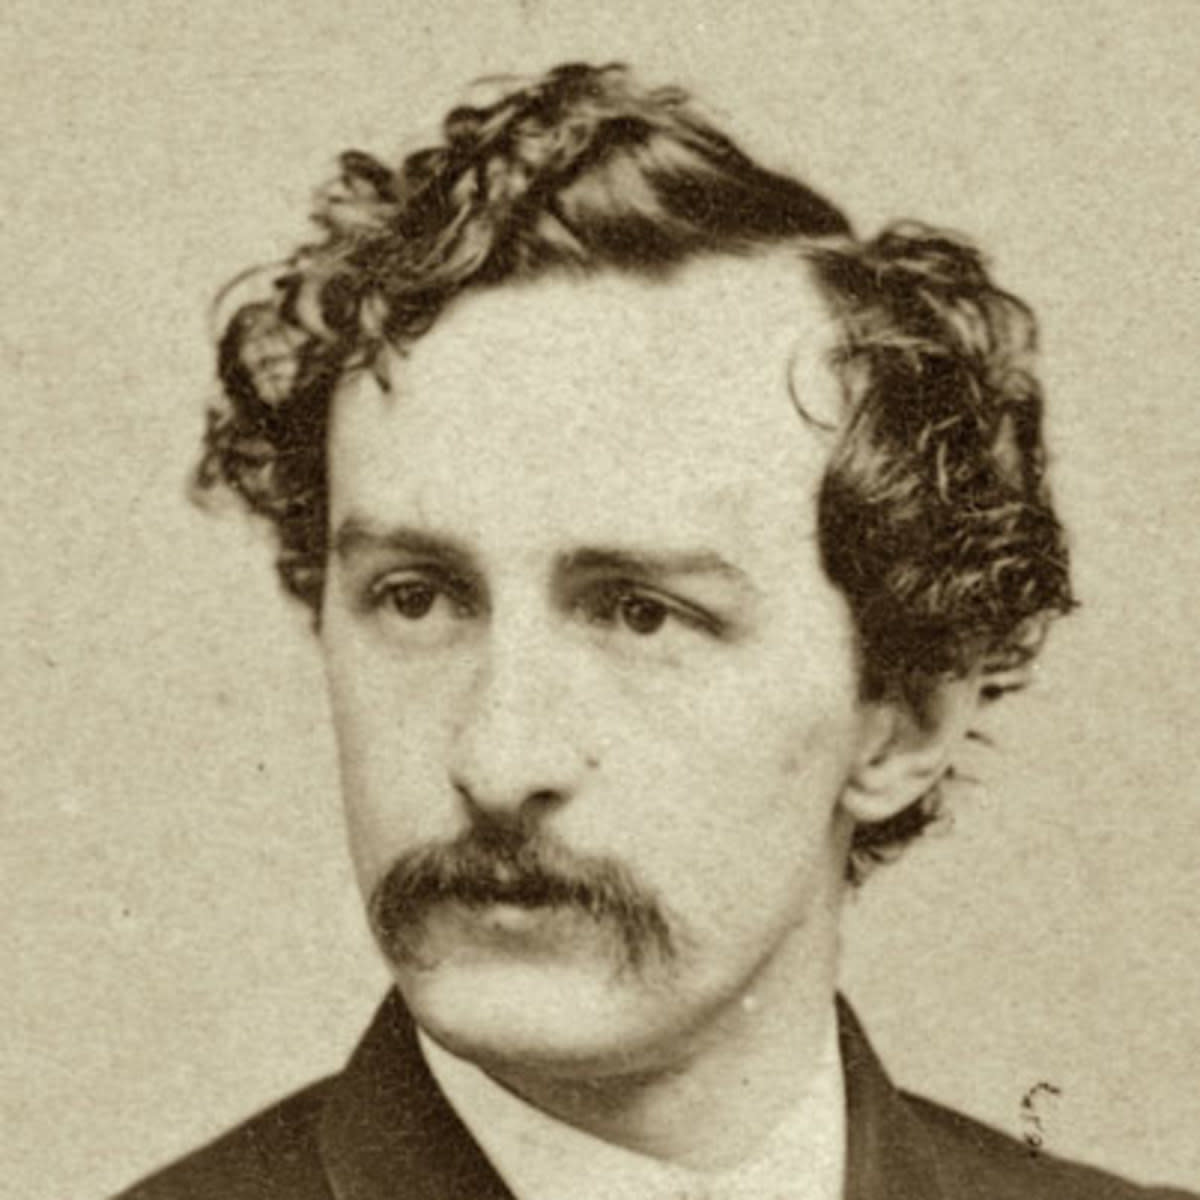 John Wilkes Booth. Abraham Lincoln's assassin, and a frequent visitor to Mary Surratt's boarding house in the months leading up to the assassination.